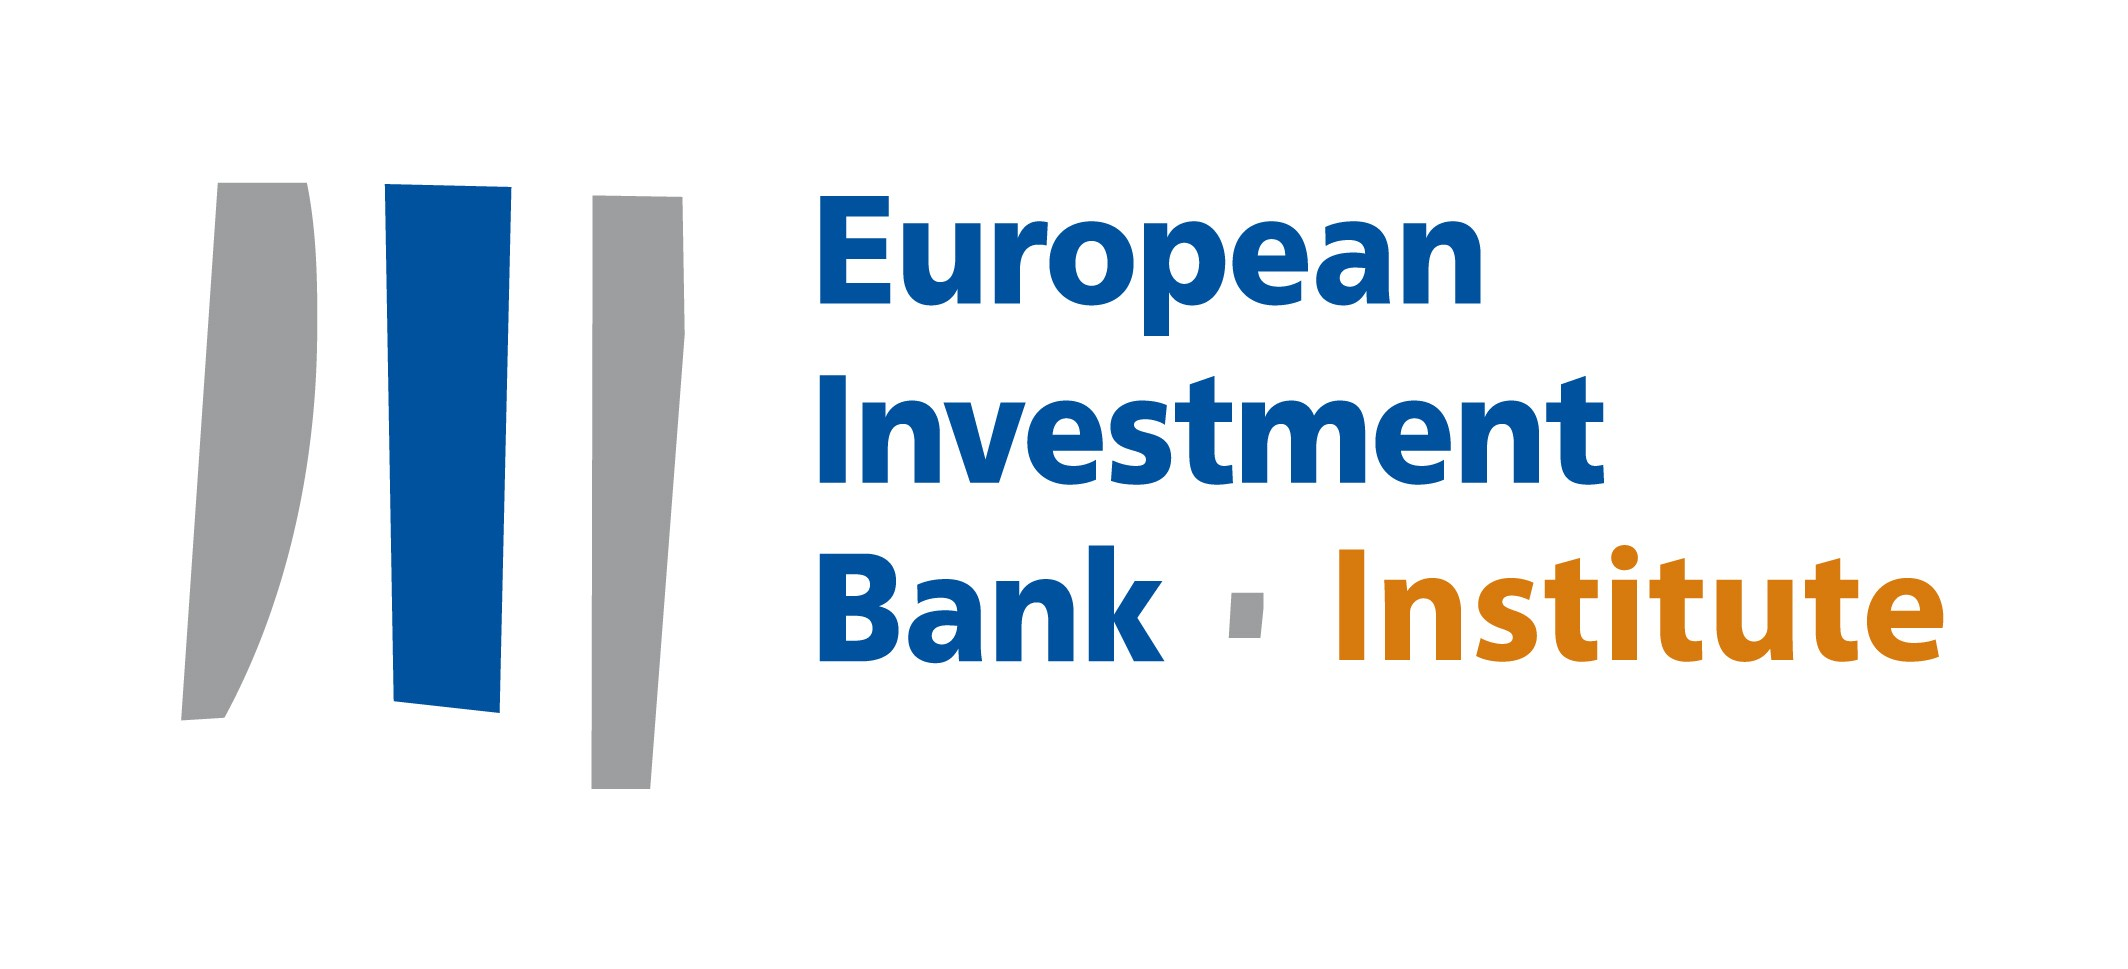 http://gflec.org/wp-content/uploads/2014/10/HomepagePage-European-Investment-Bank-Institute.jpg